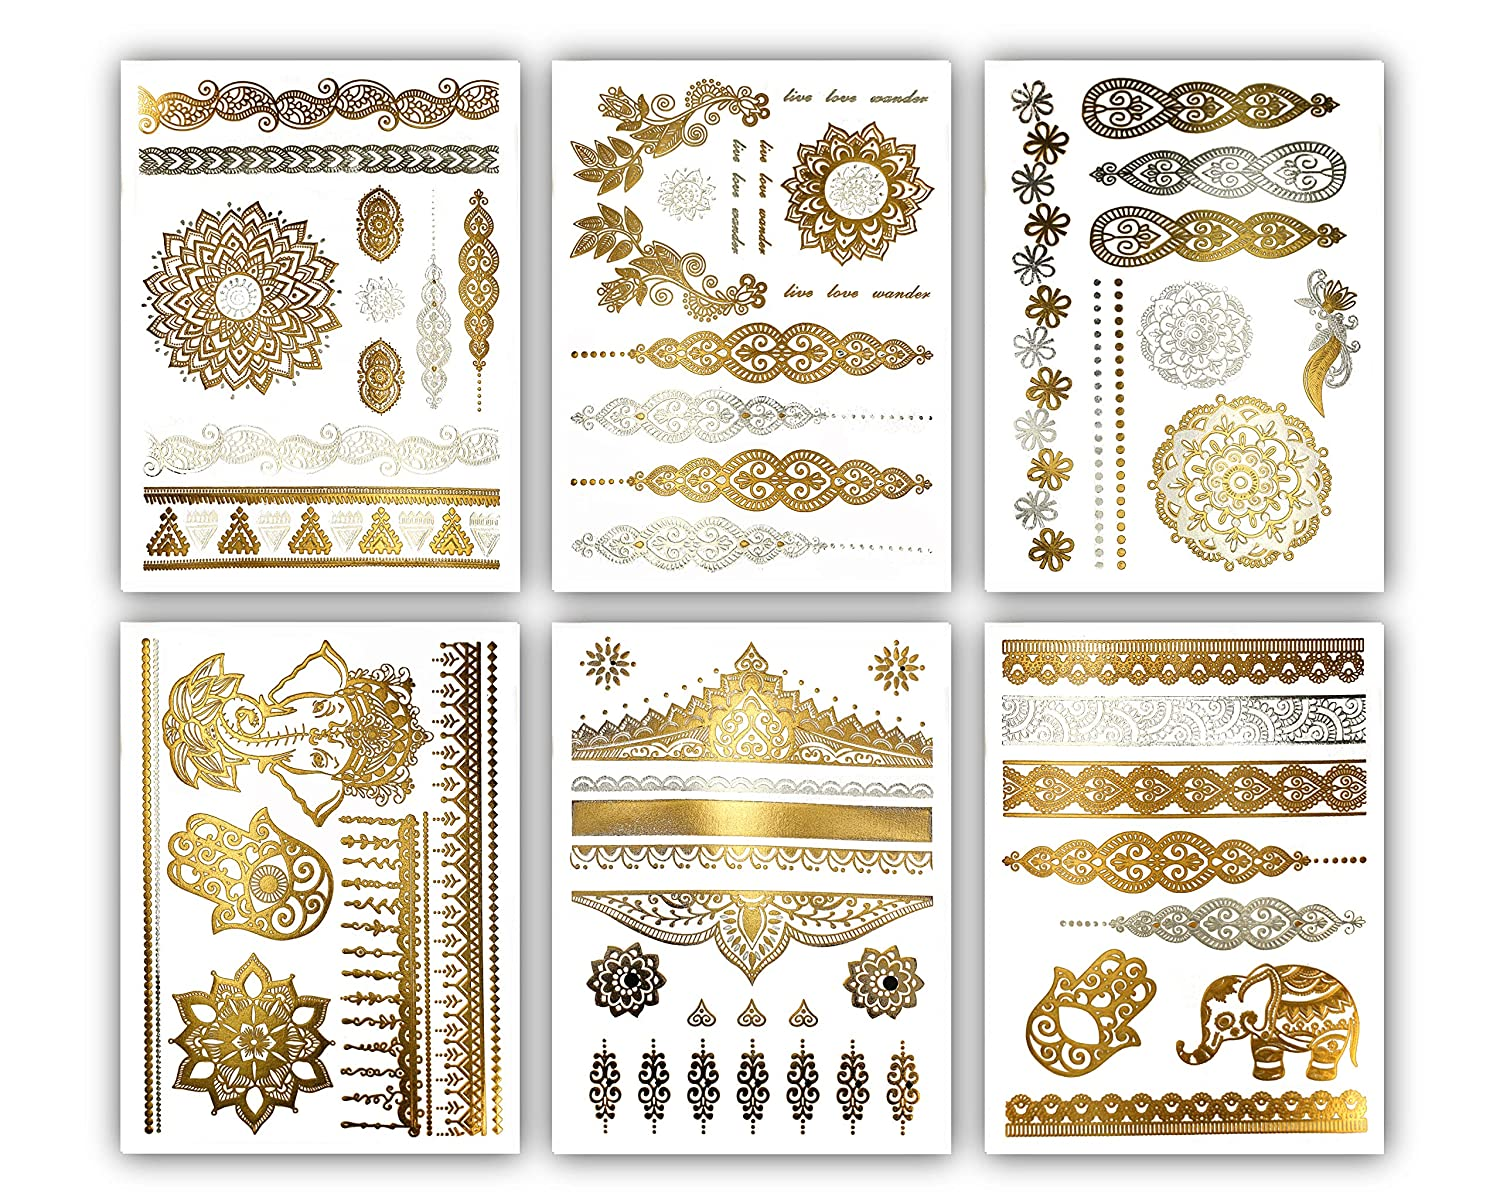 Amazon Com Terra Tattoos Temporary Henna Metallic Tattoos Over 75 Mandala Tattoos Gold Beauty